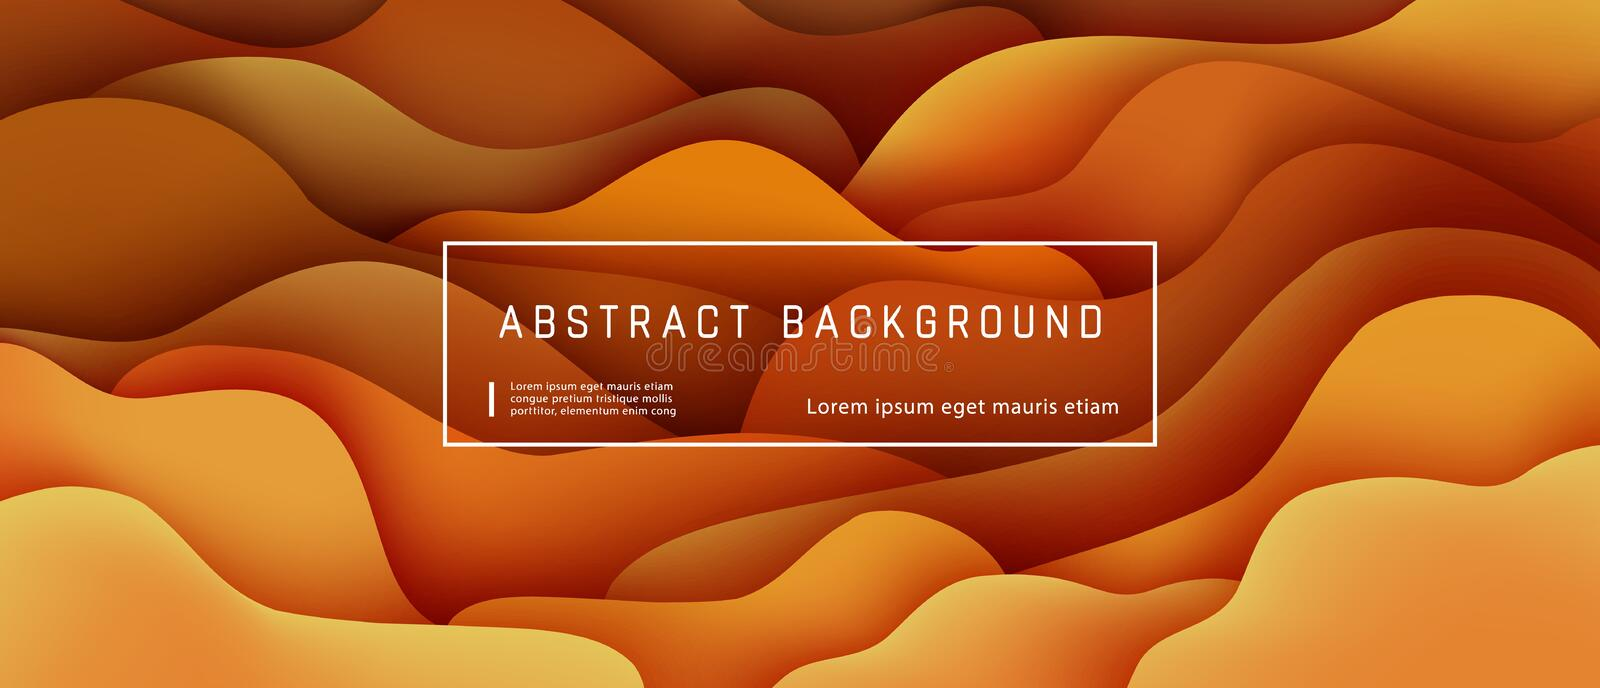 Abstract background with expressive orange, brown wave motion flow and liquid shapes composition. Gradient fluid abstract background template, vector vector illustration